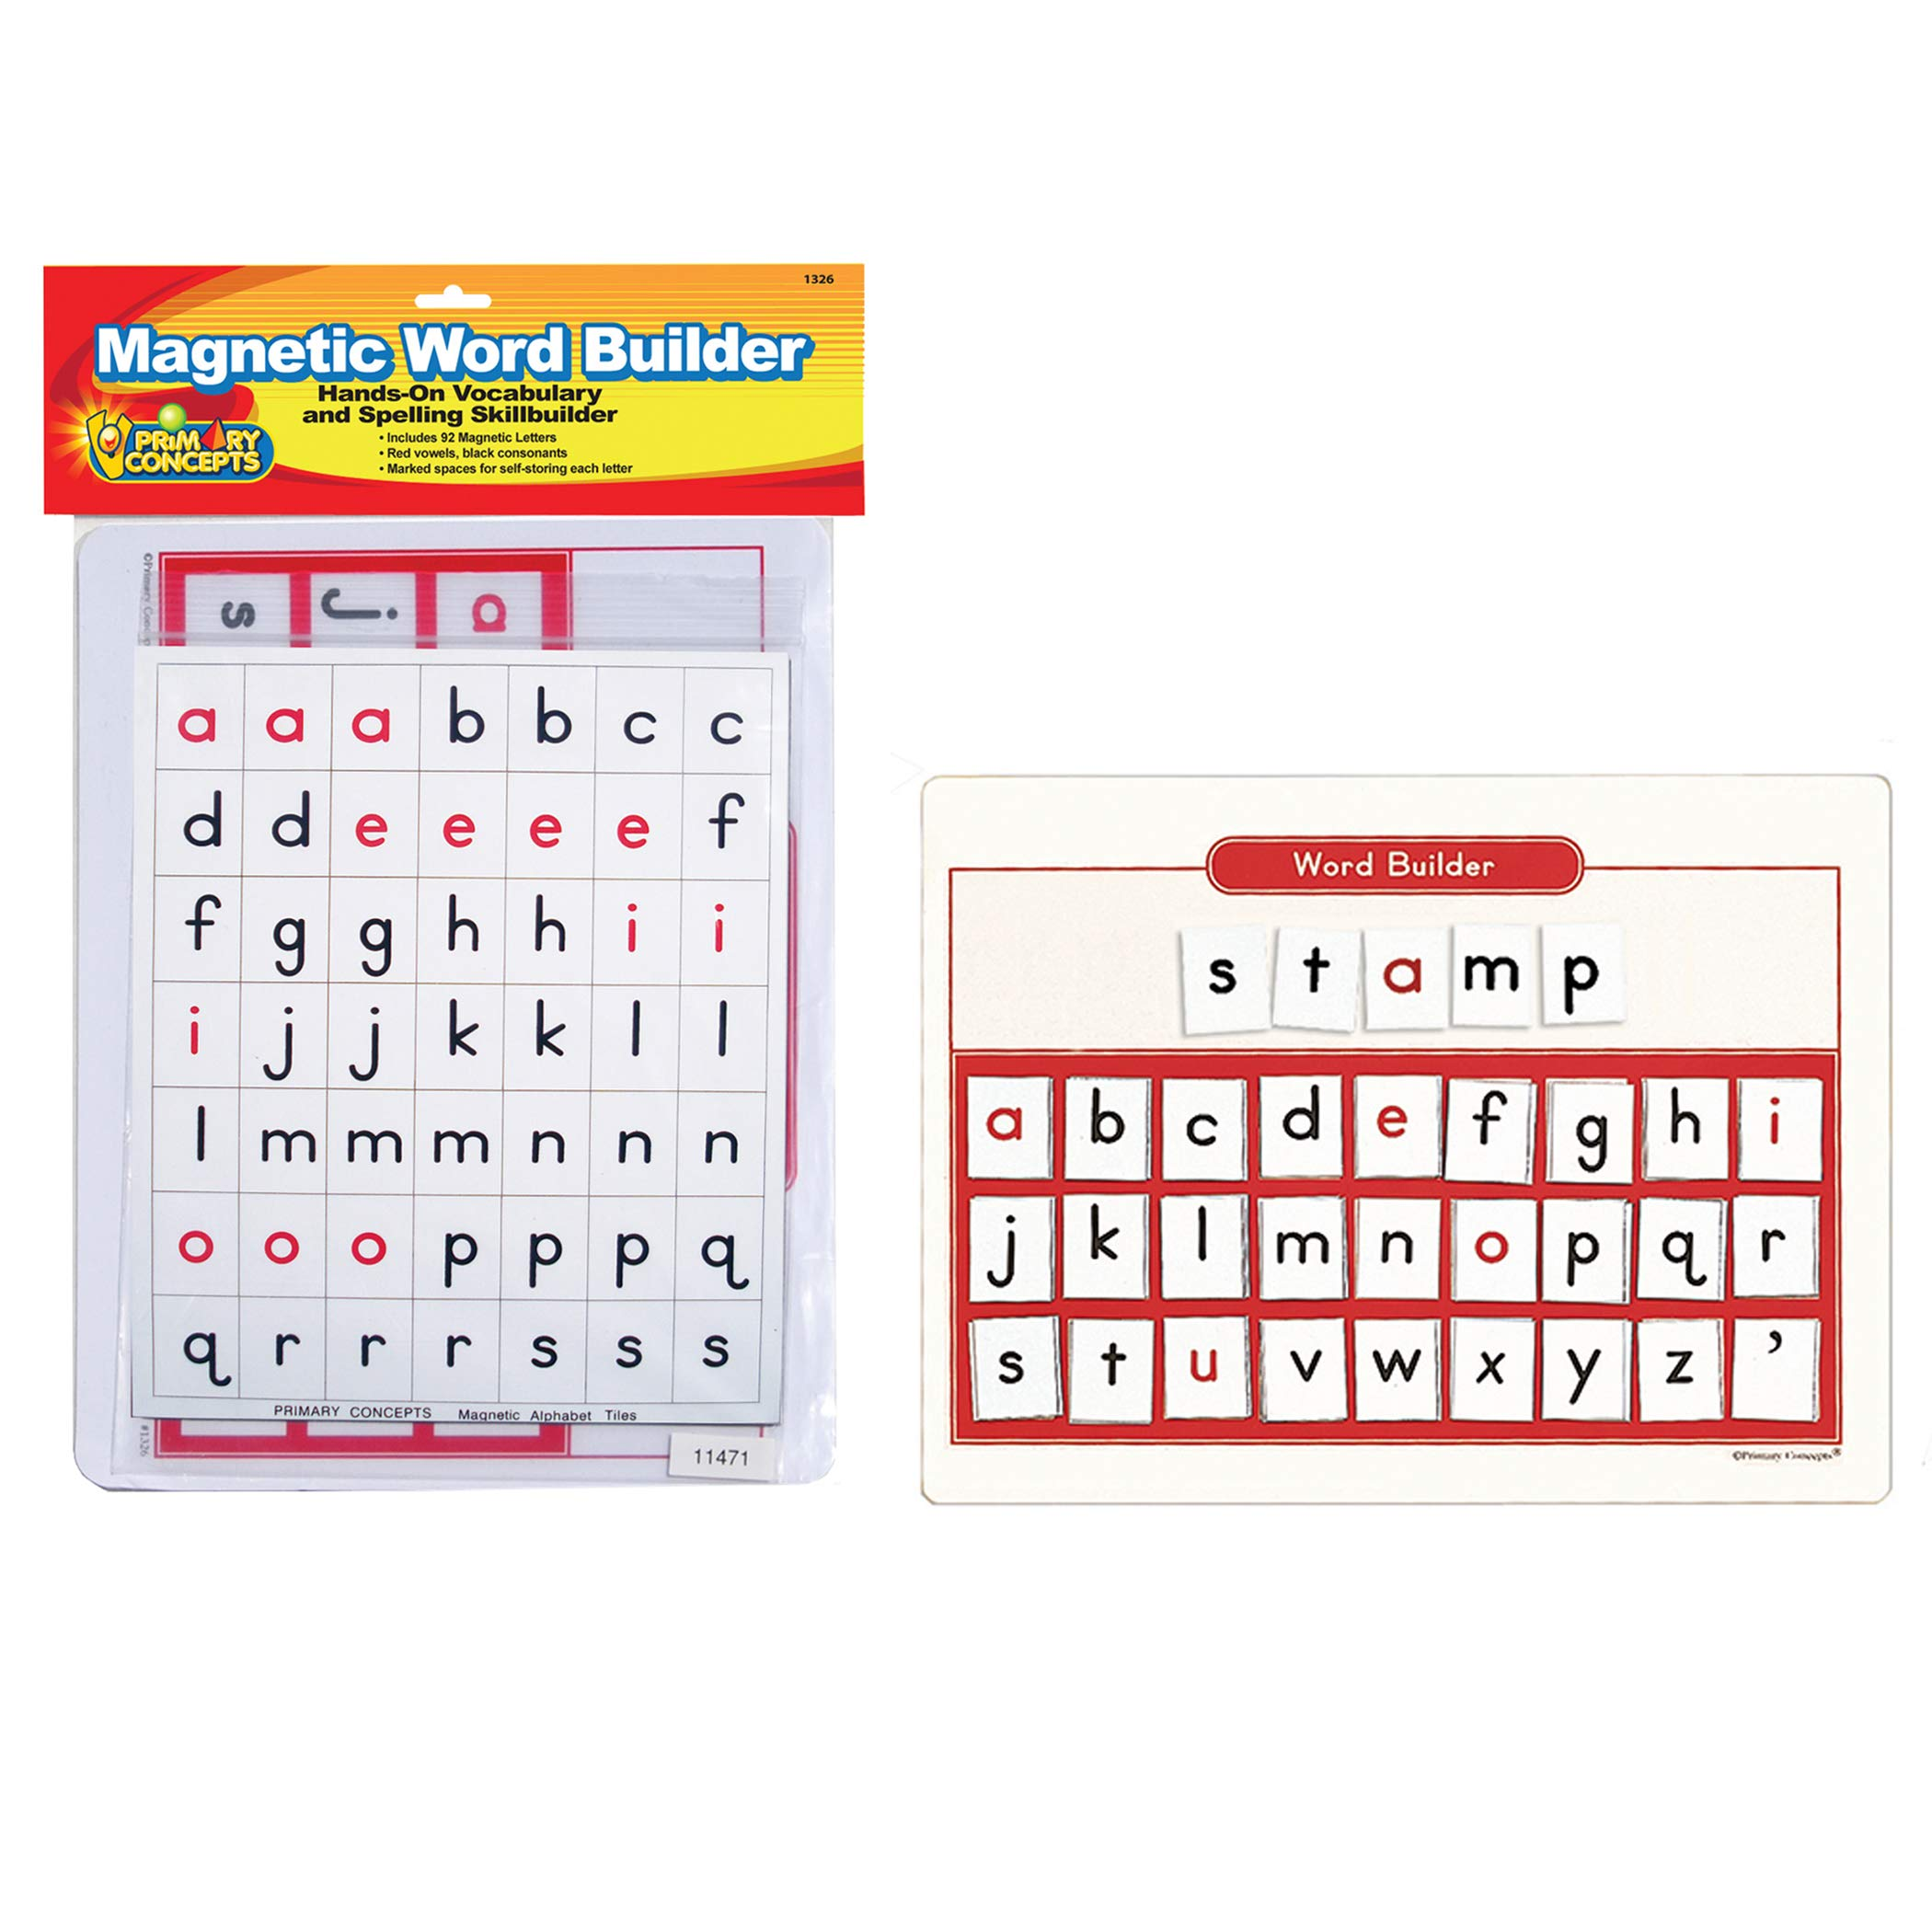 Primary Concepts, Inc PC-1326 Magnetic Word Builder Learning kit by Primary Concepts,